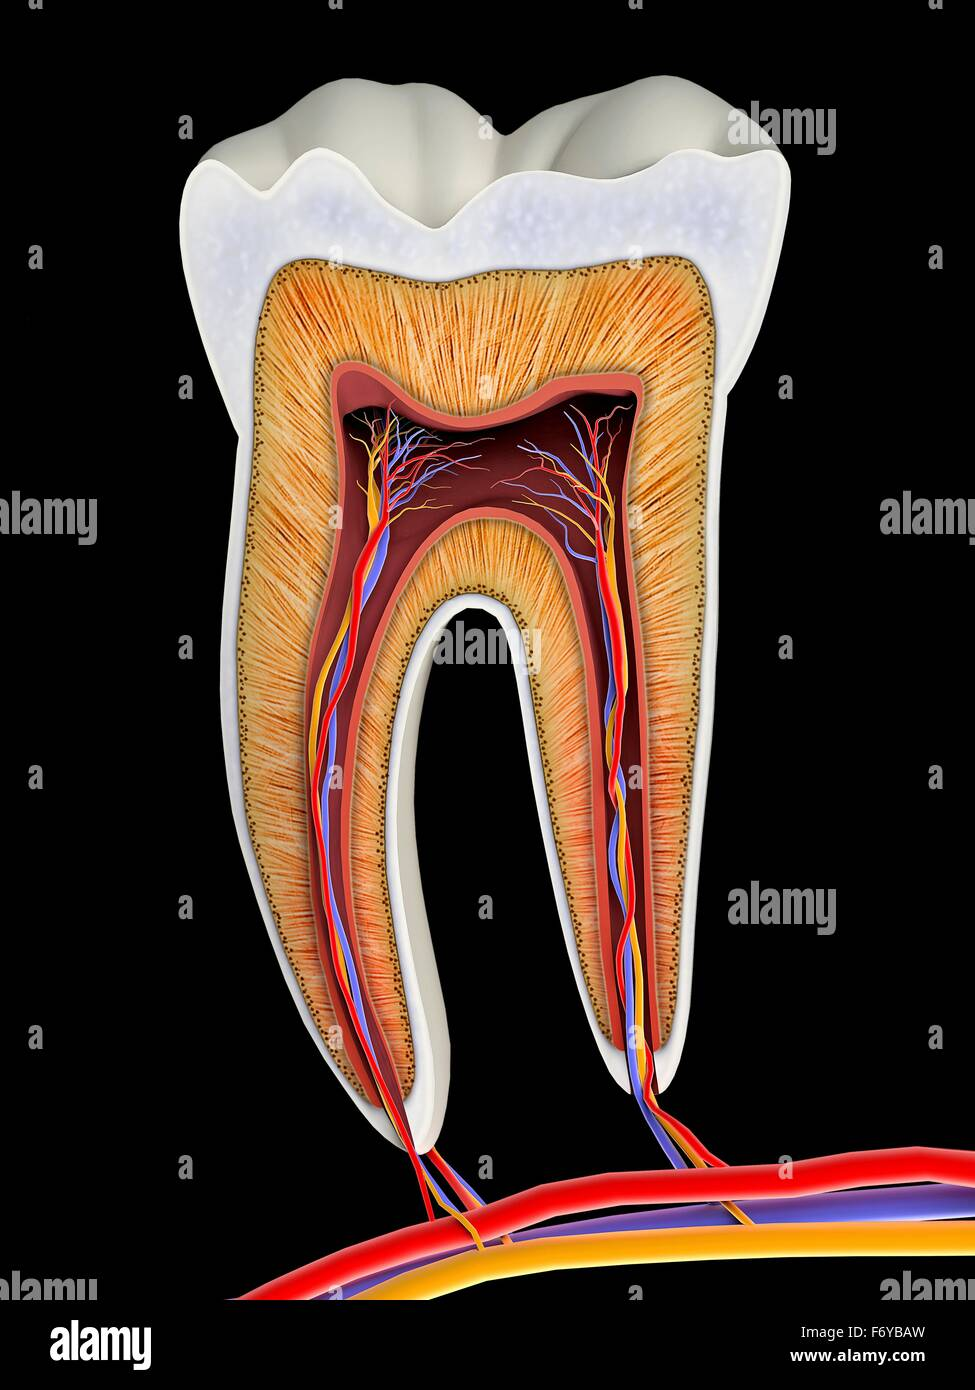 Molar tooth cross-section, artwork. The upper (biting ...